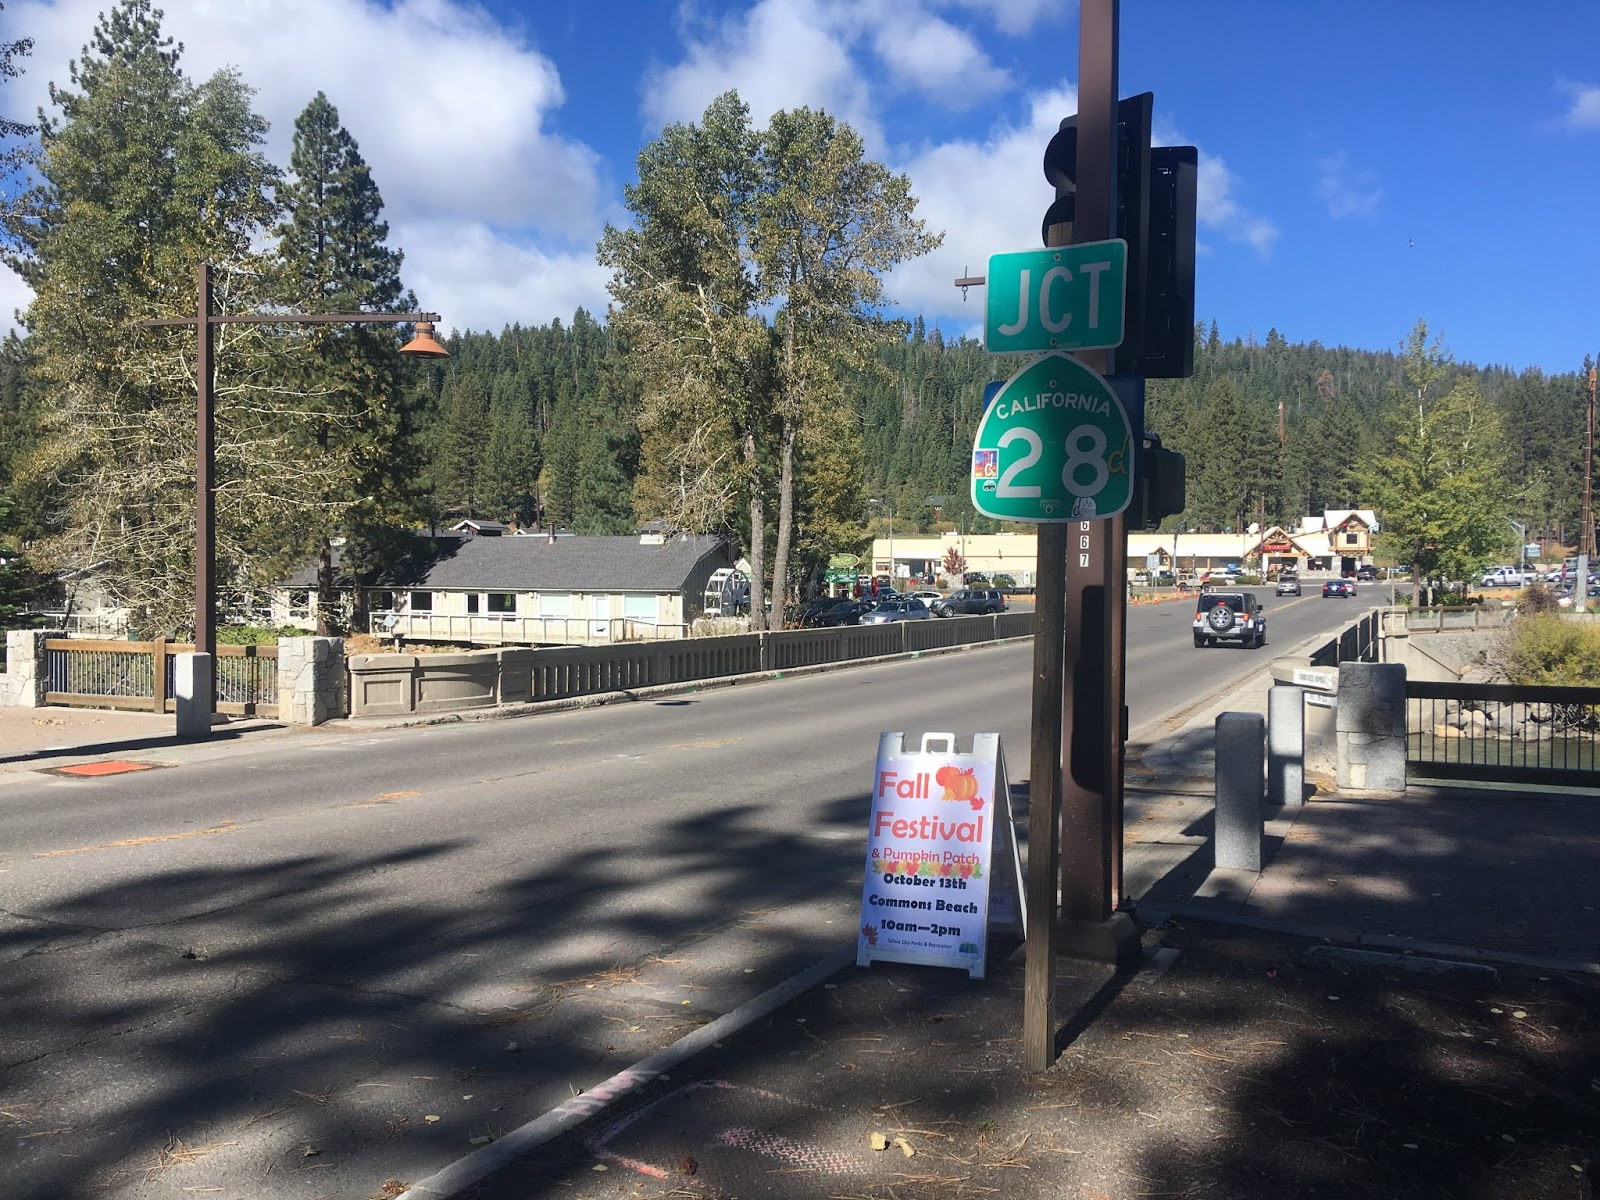 at the truckee river i crossed the 1928 fanny bridge and headed east along the north shore of lake tahoe towards nevada on california state route 28